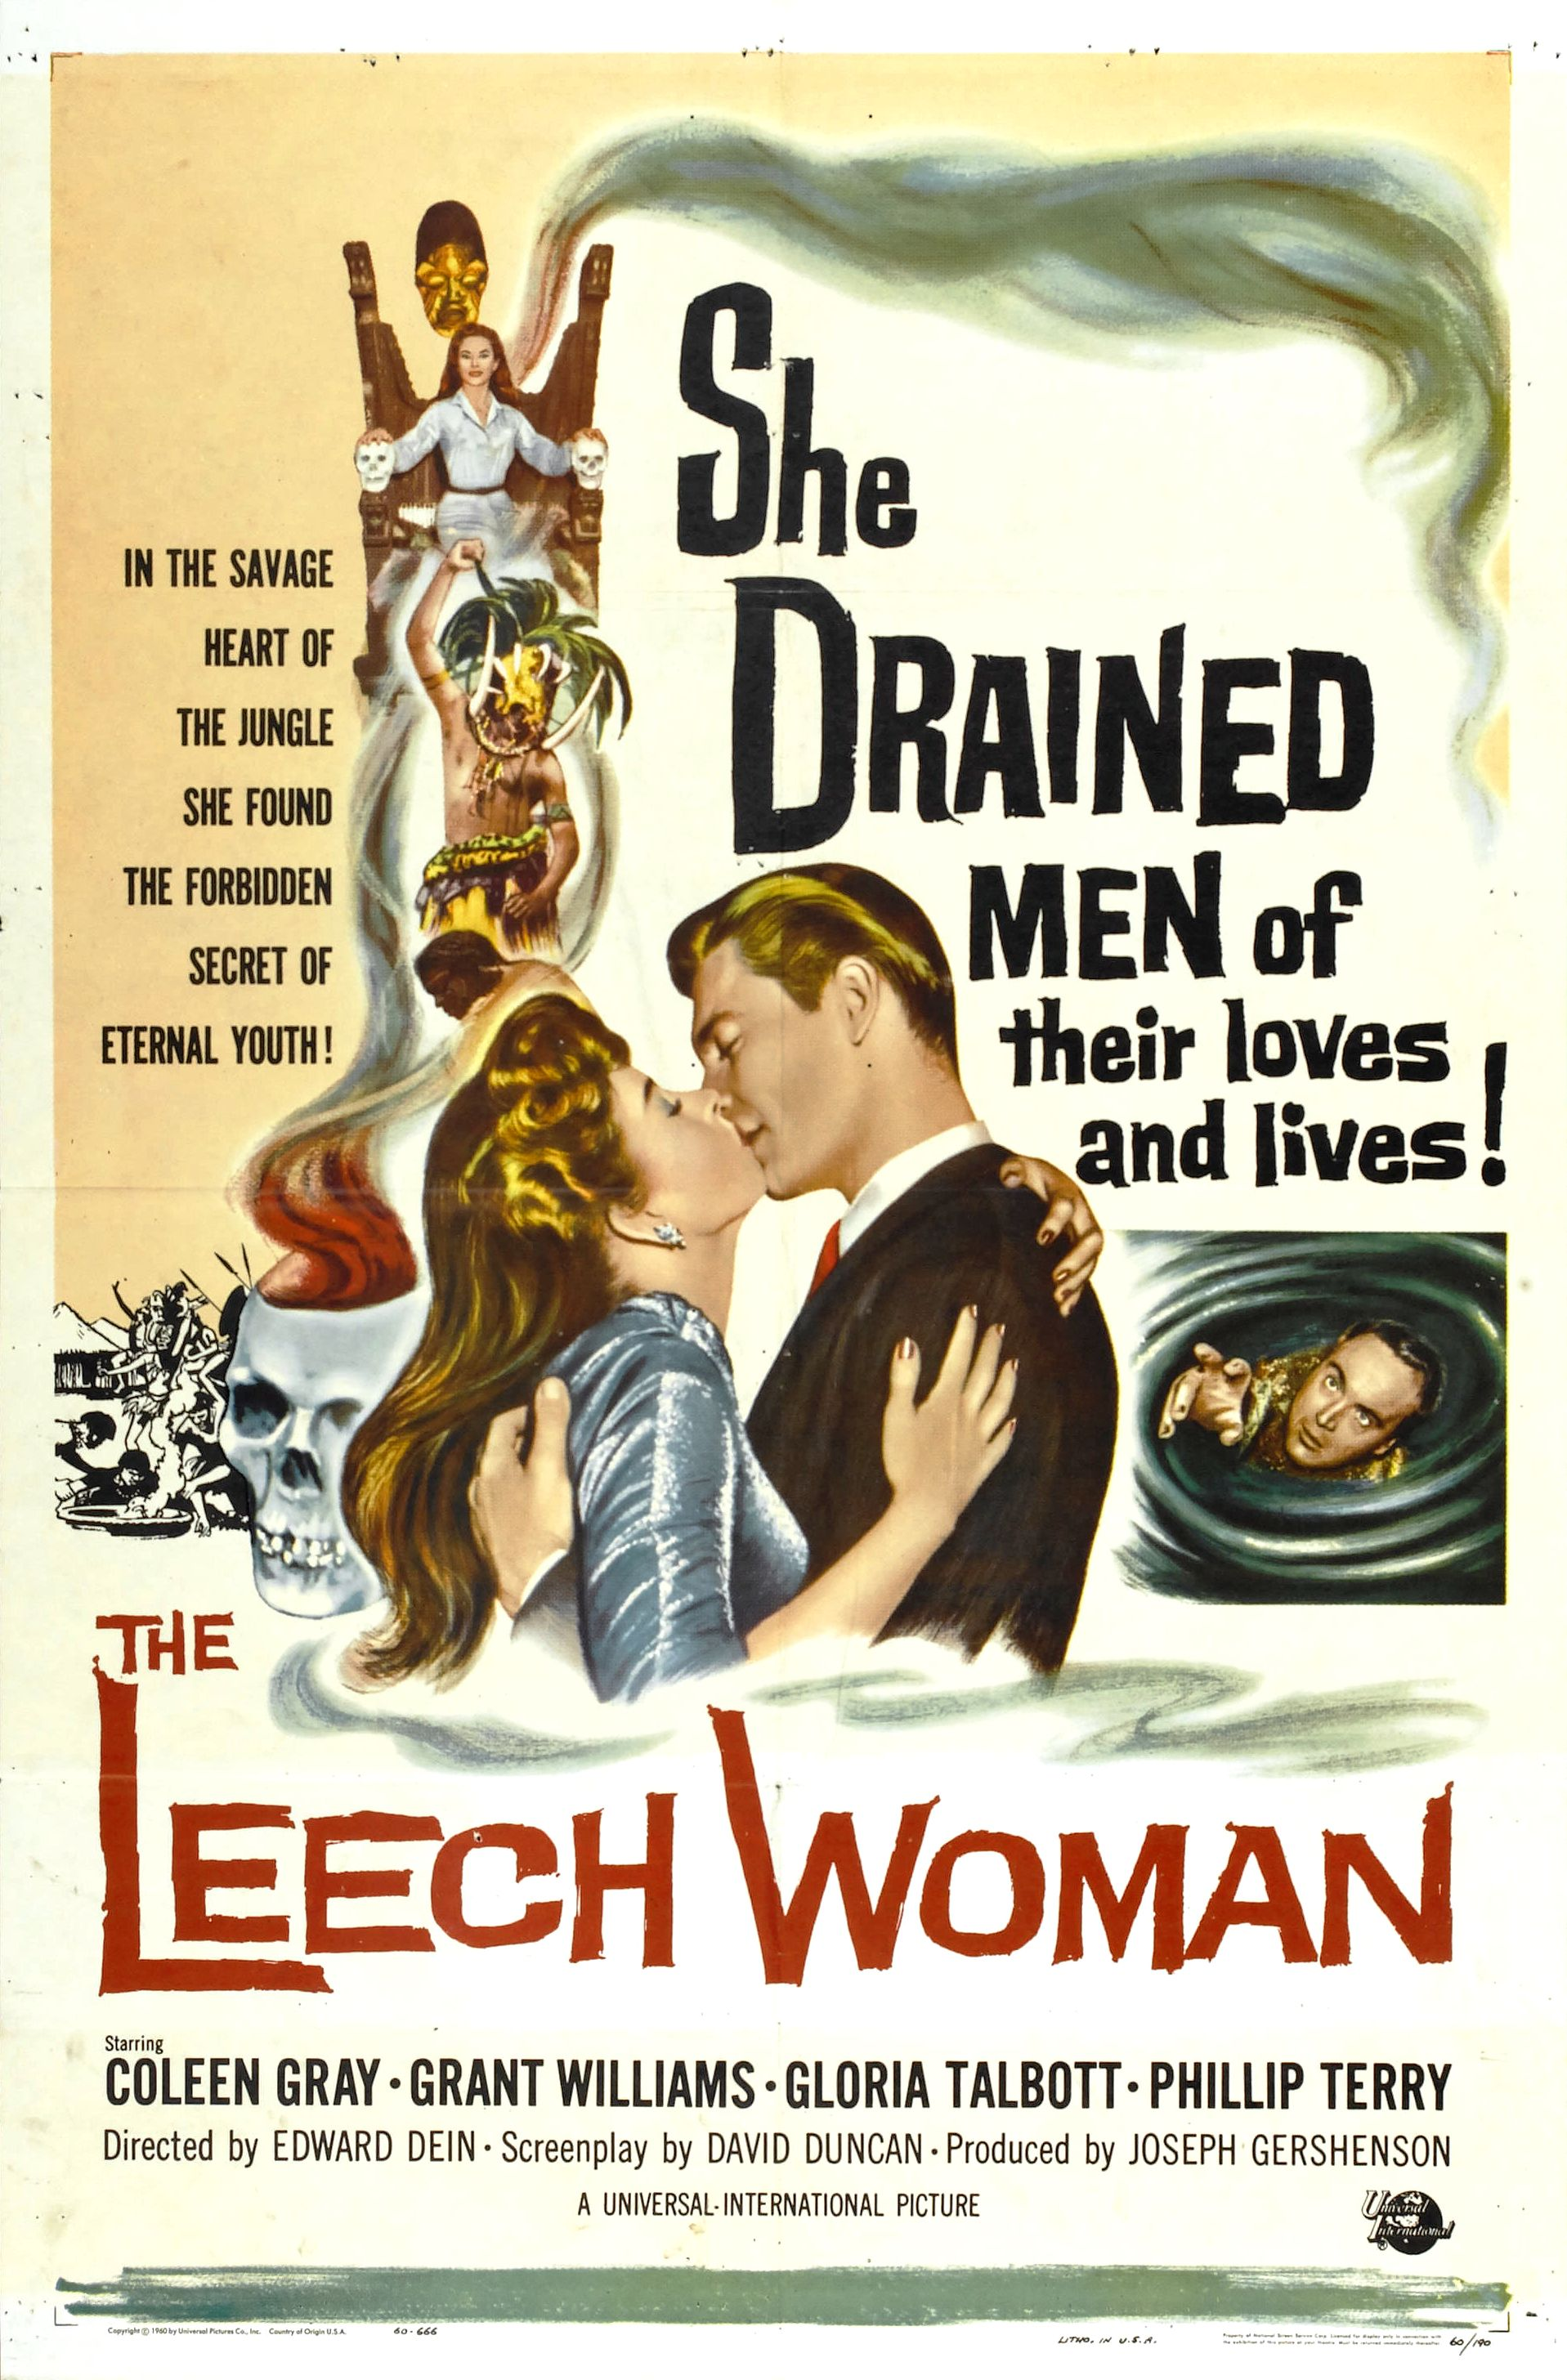 The Leech Woman (film)